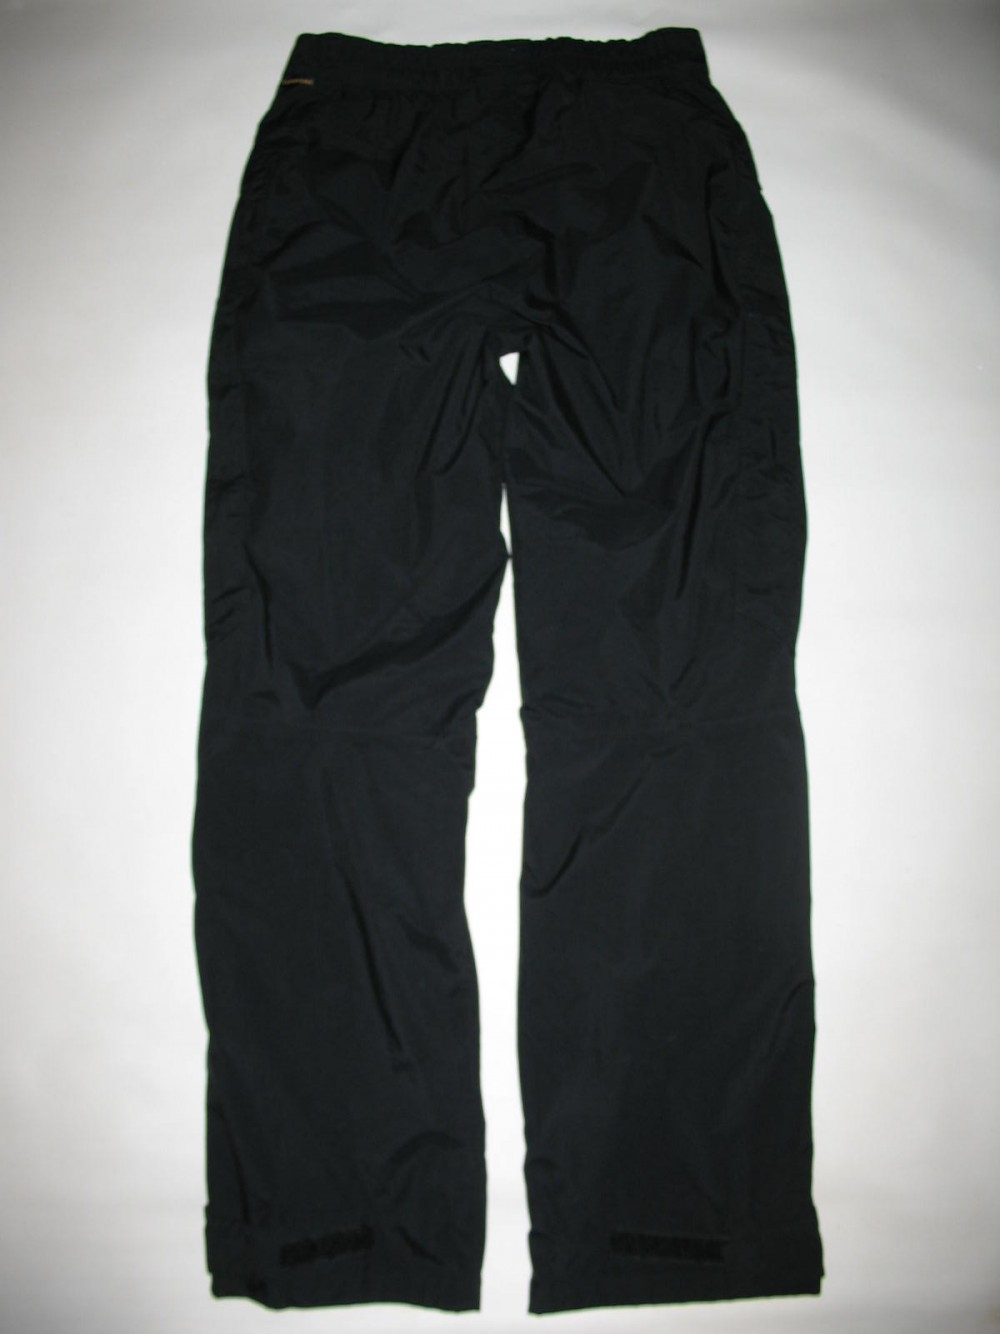 Штаны JACK WOLFSKIN texapore pants lady (размер L/M) - 2